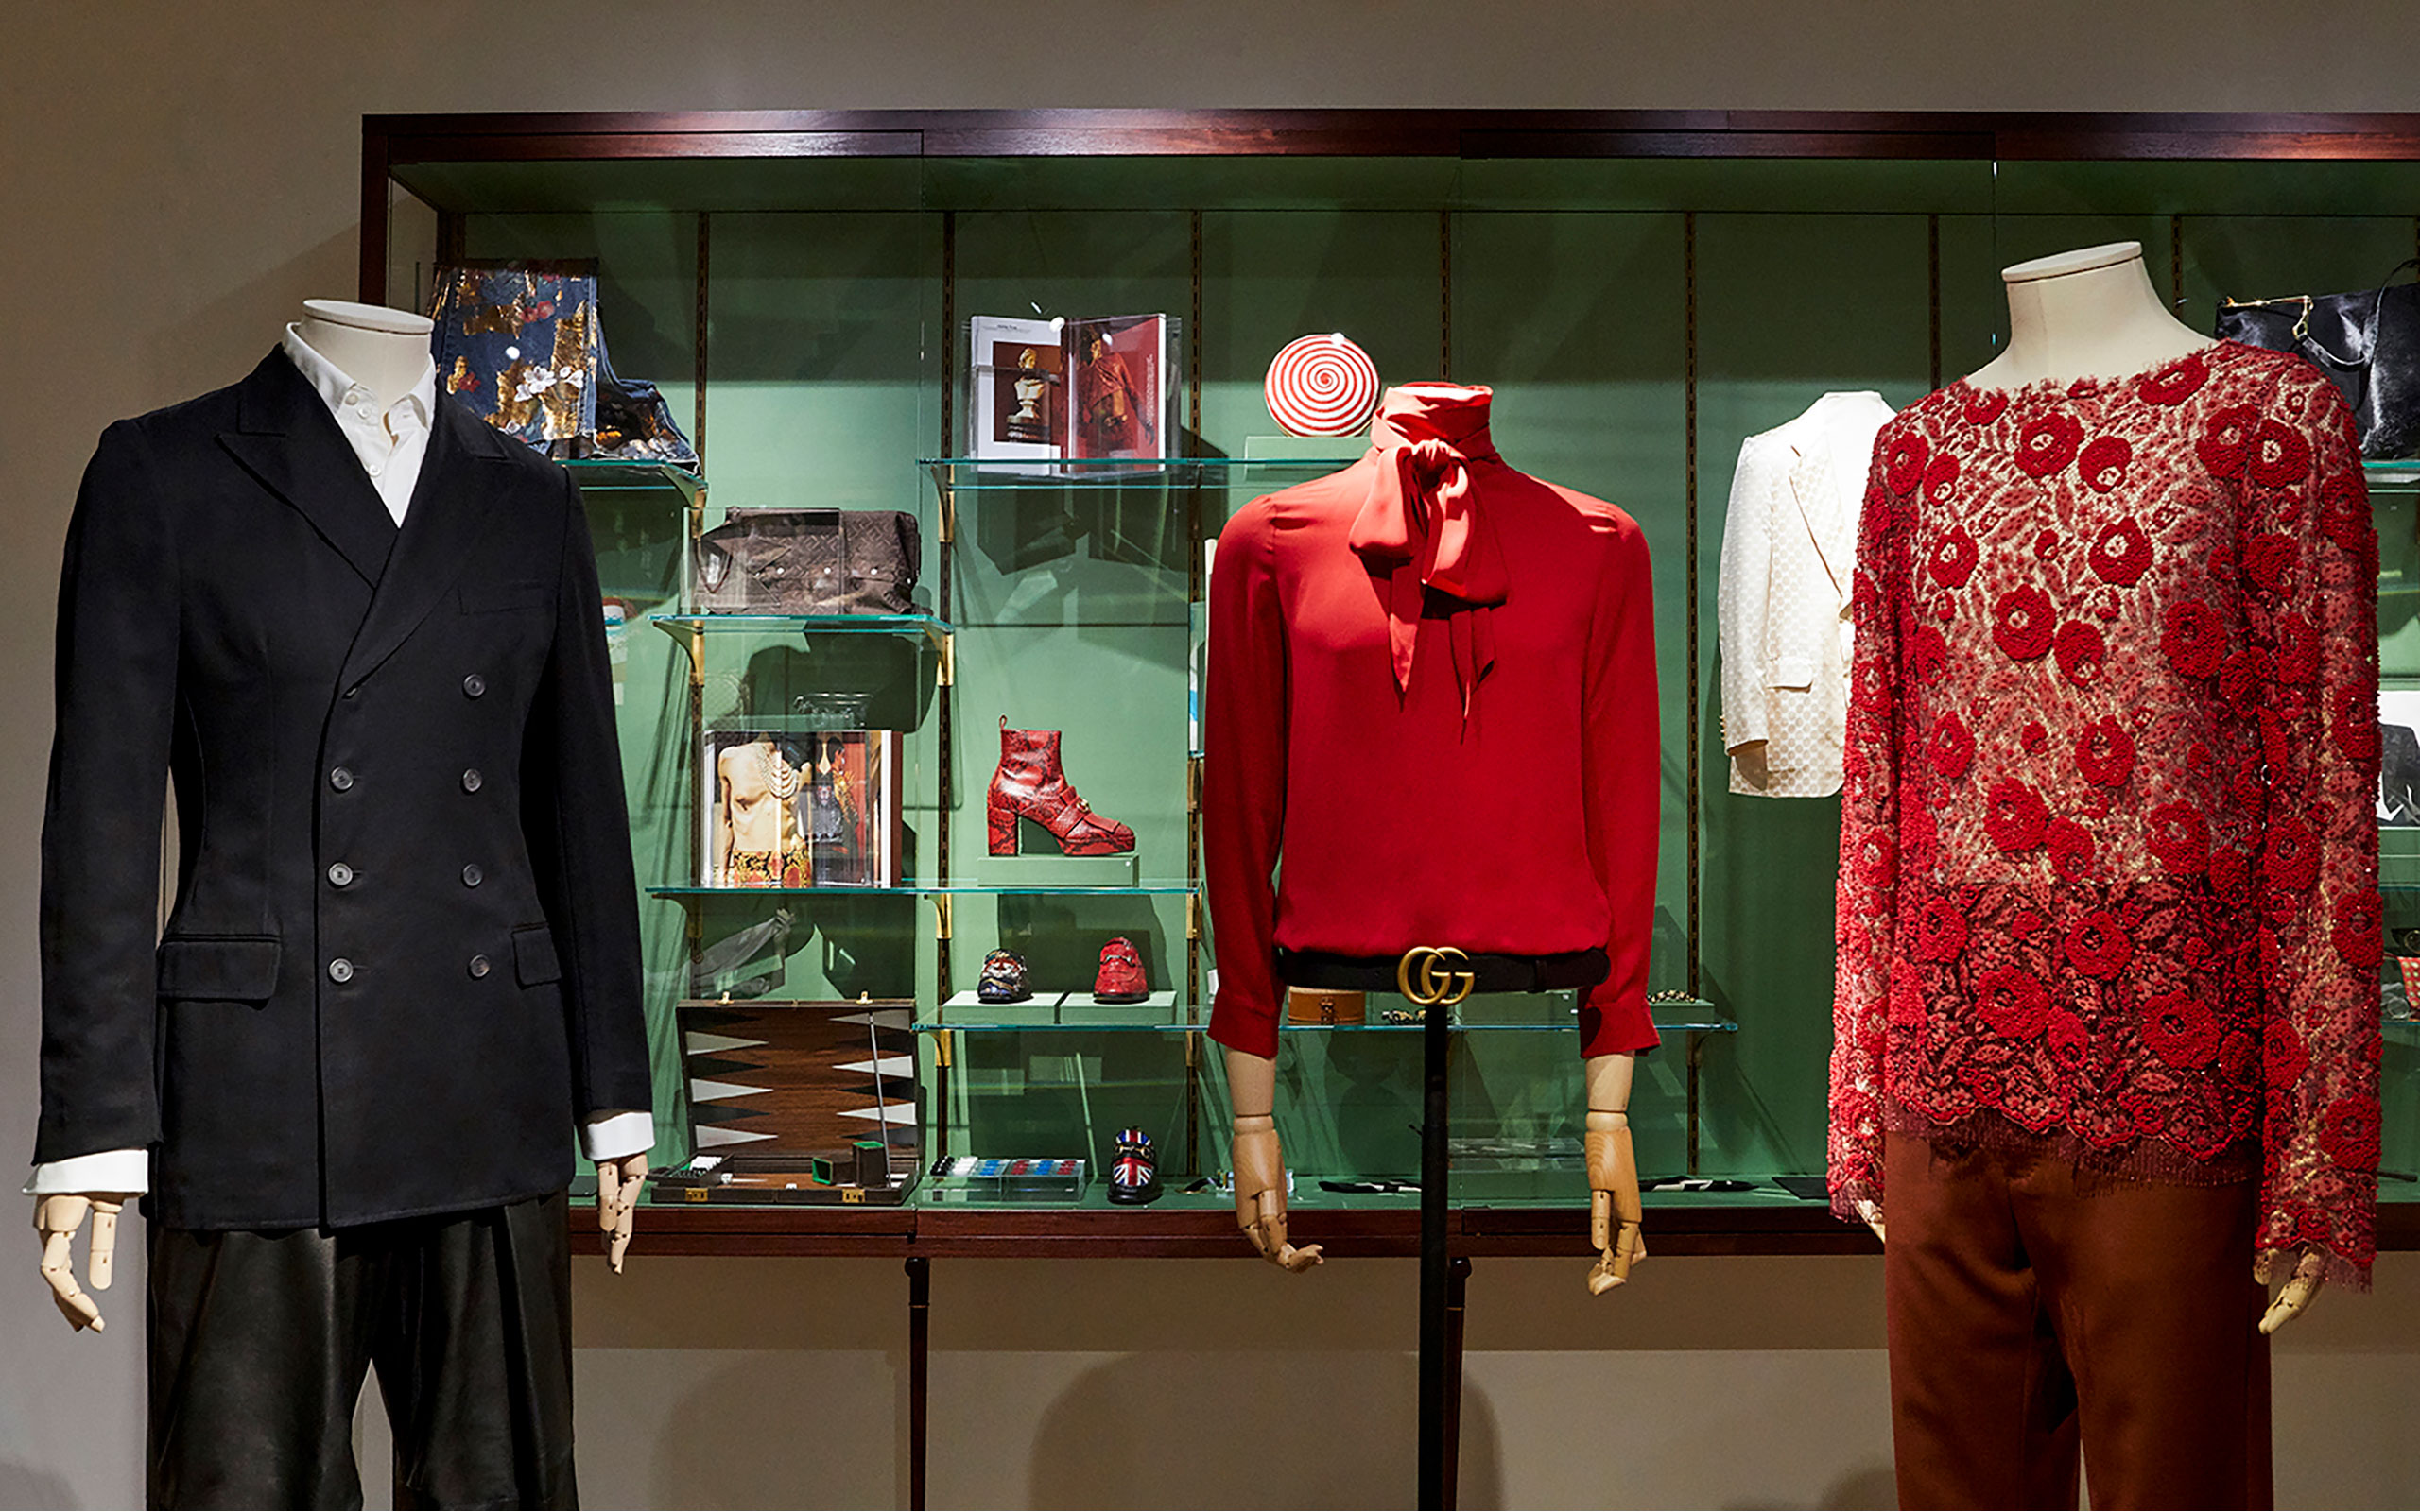 """Gucci Garden Holds """"Il Maschile-Androgynous Mind, Eclectic Body"""" Exhibition"""